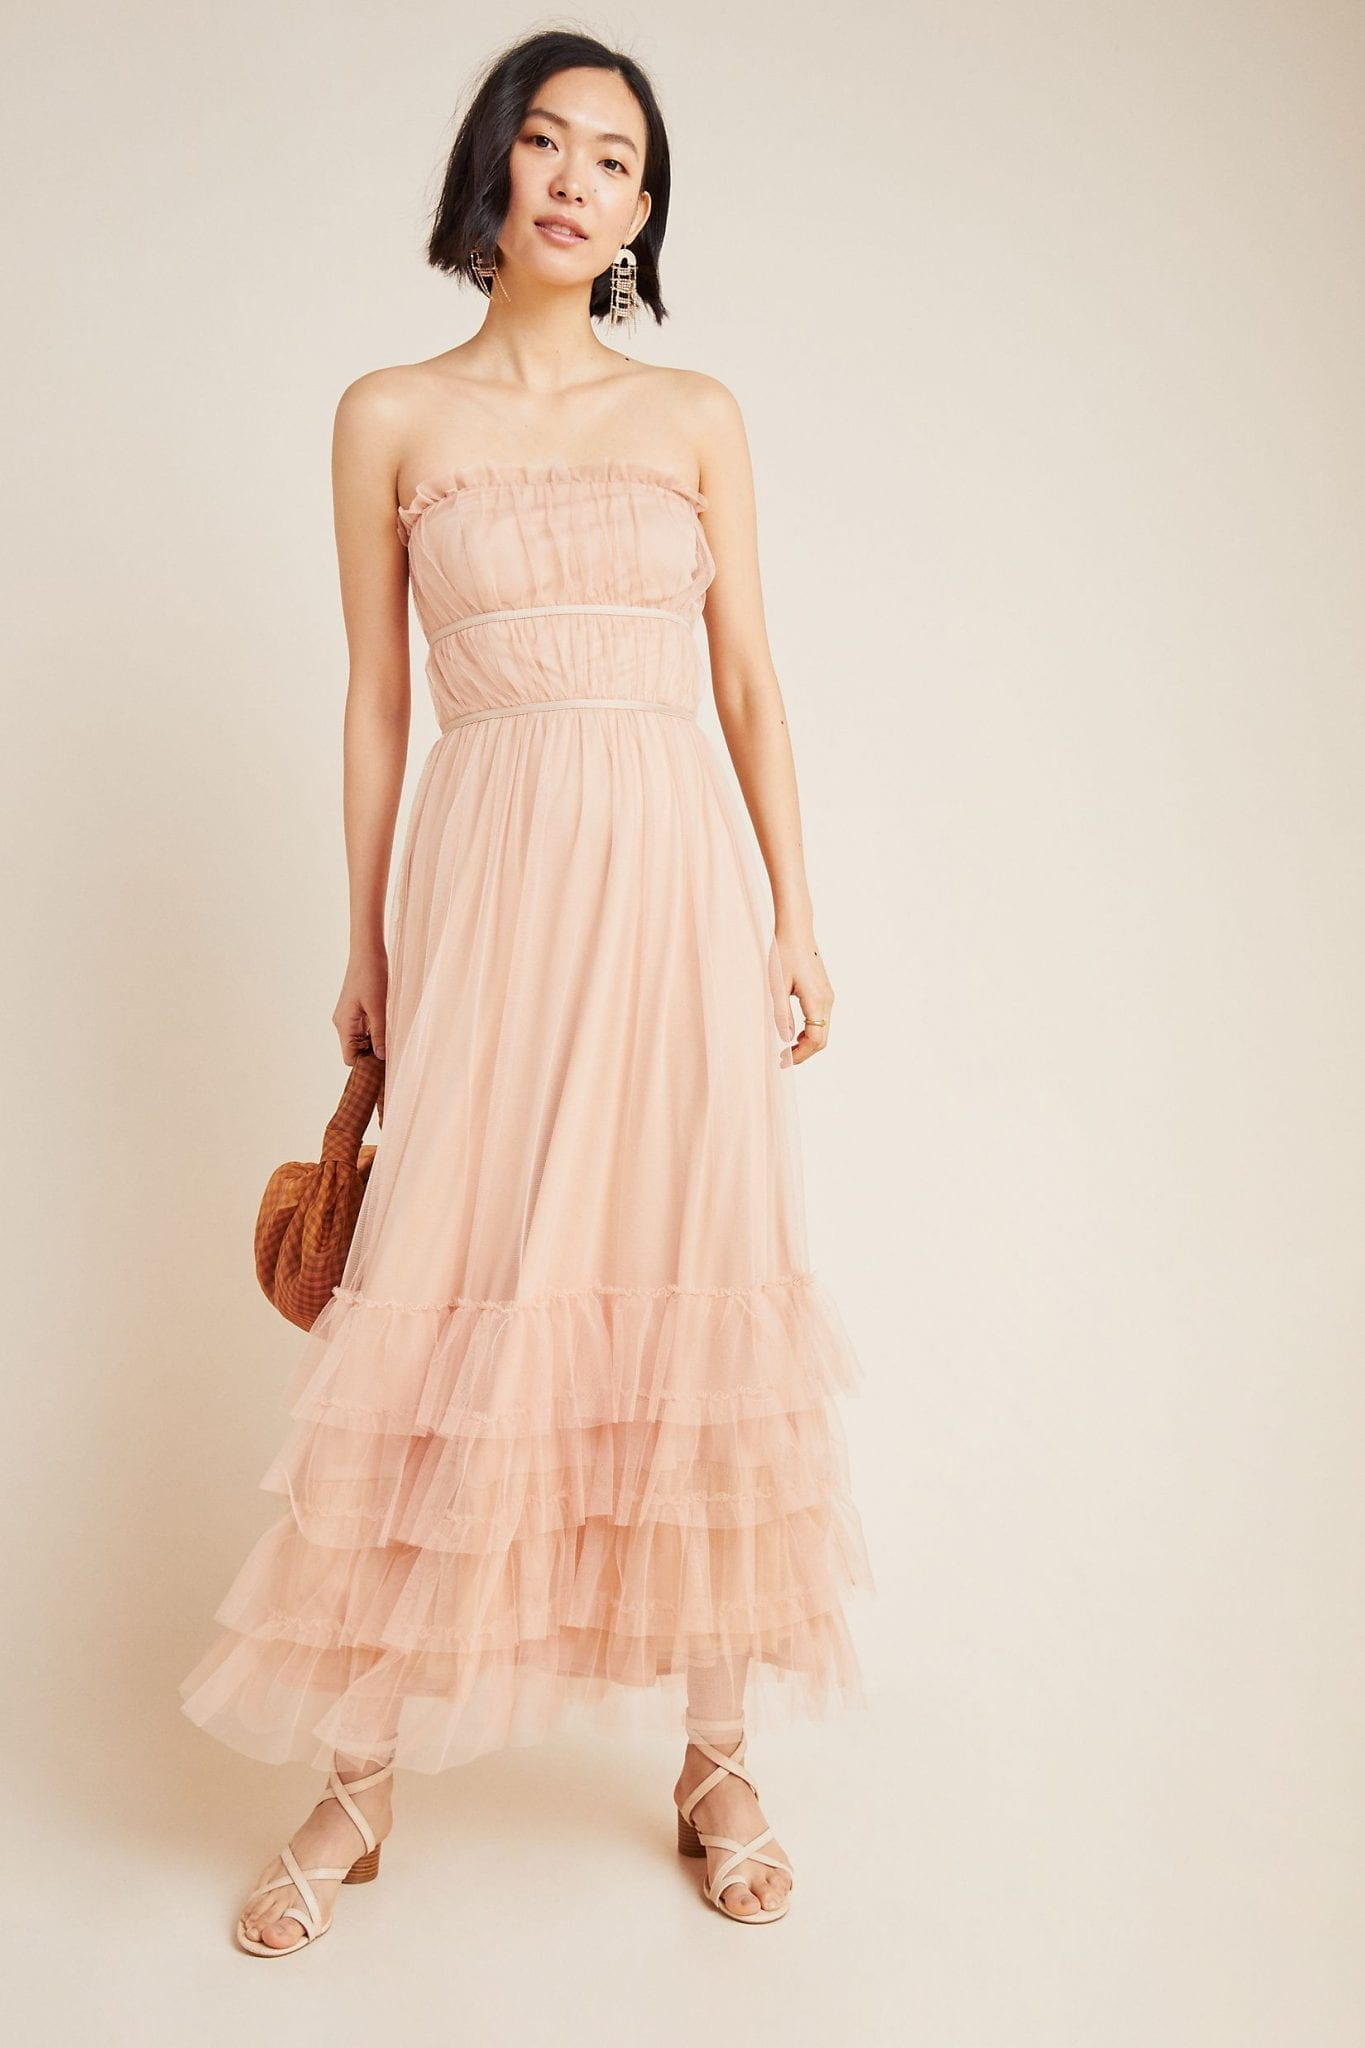 EVA FRANCO Graciela Tiered Tulle Maxi Dress